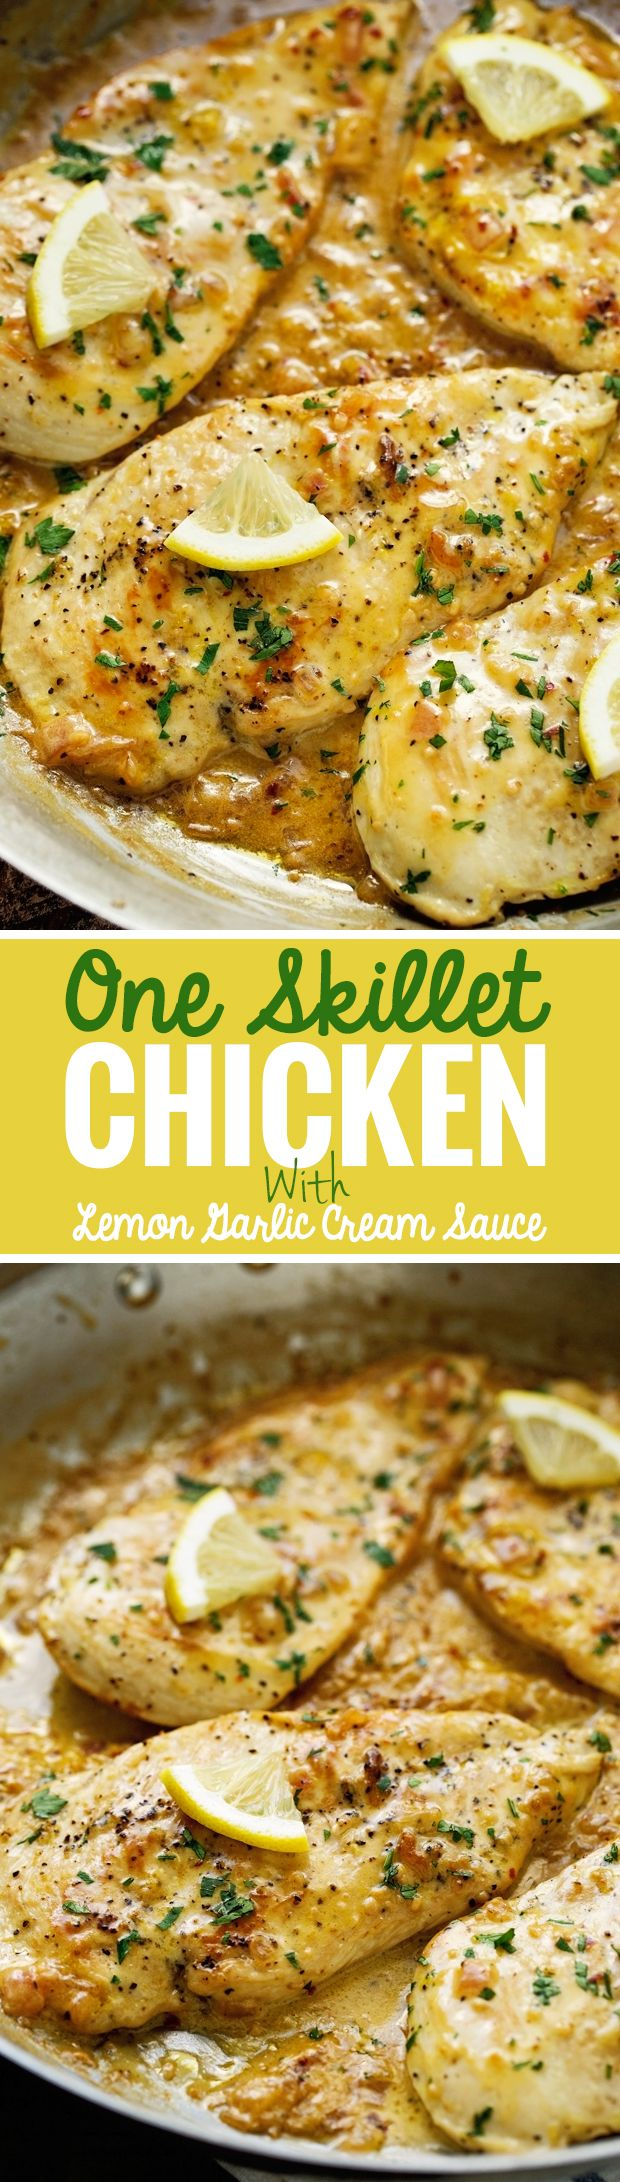 One Skillet Chicken topped with A Lemon garlic Cream Sauce - Ready in 30 minutes